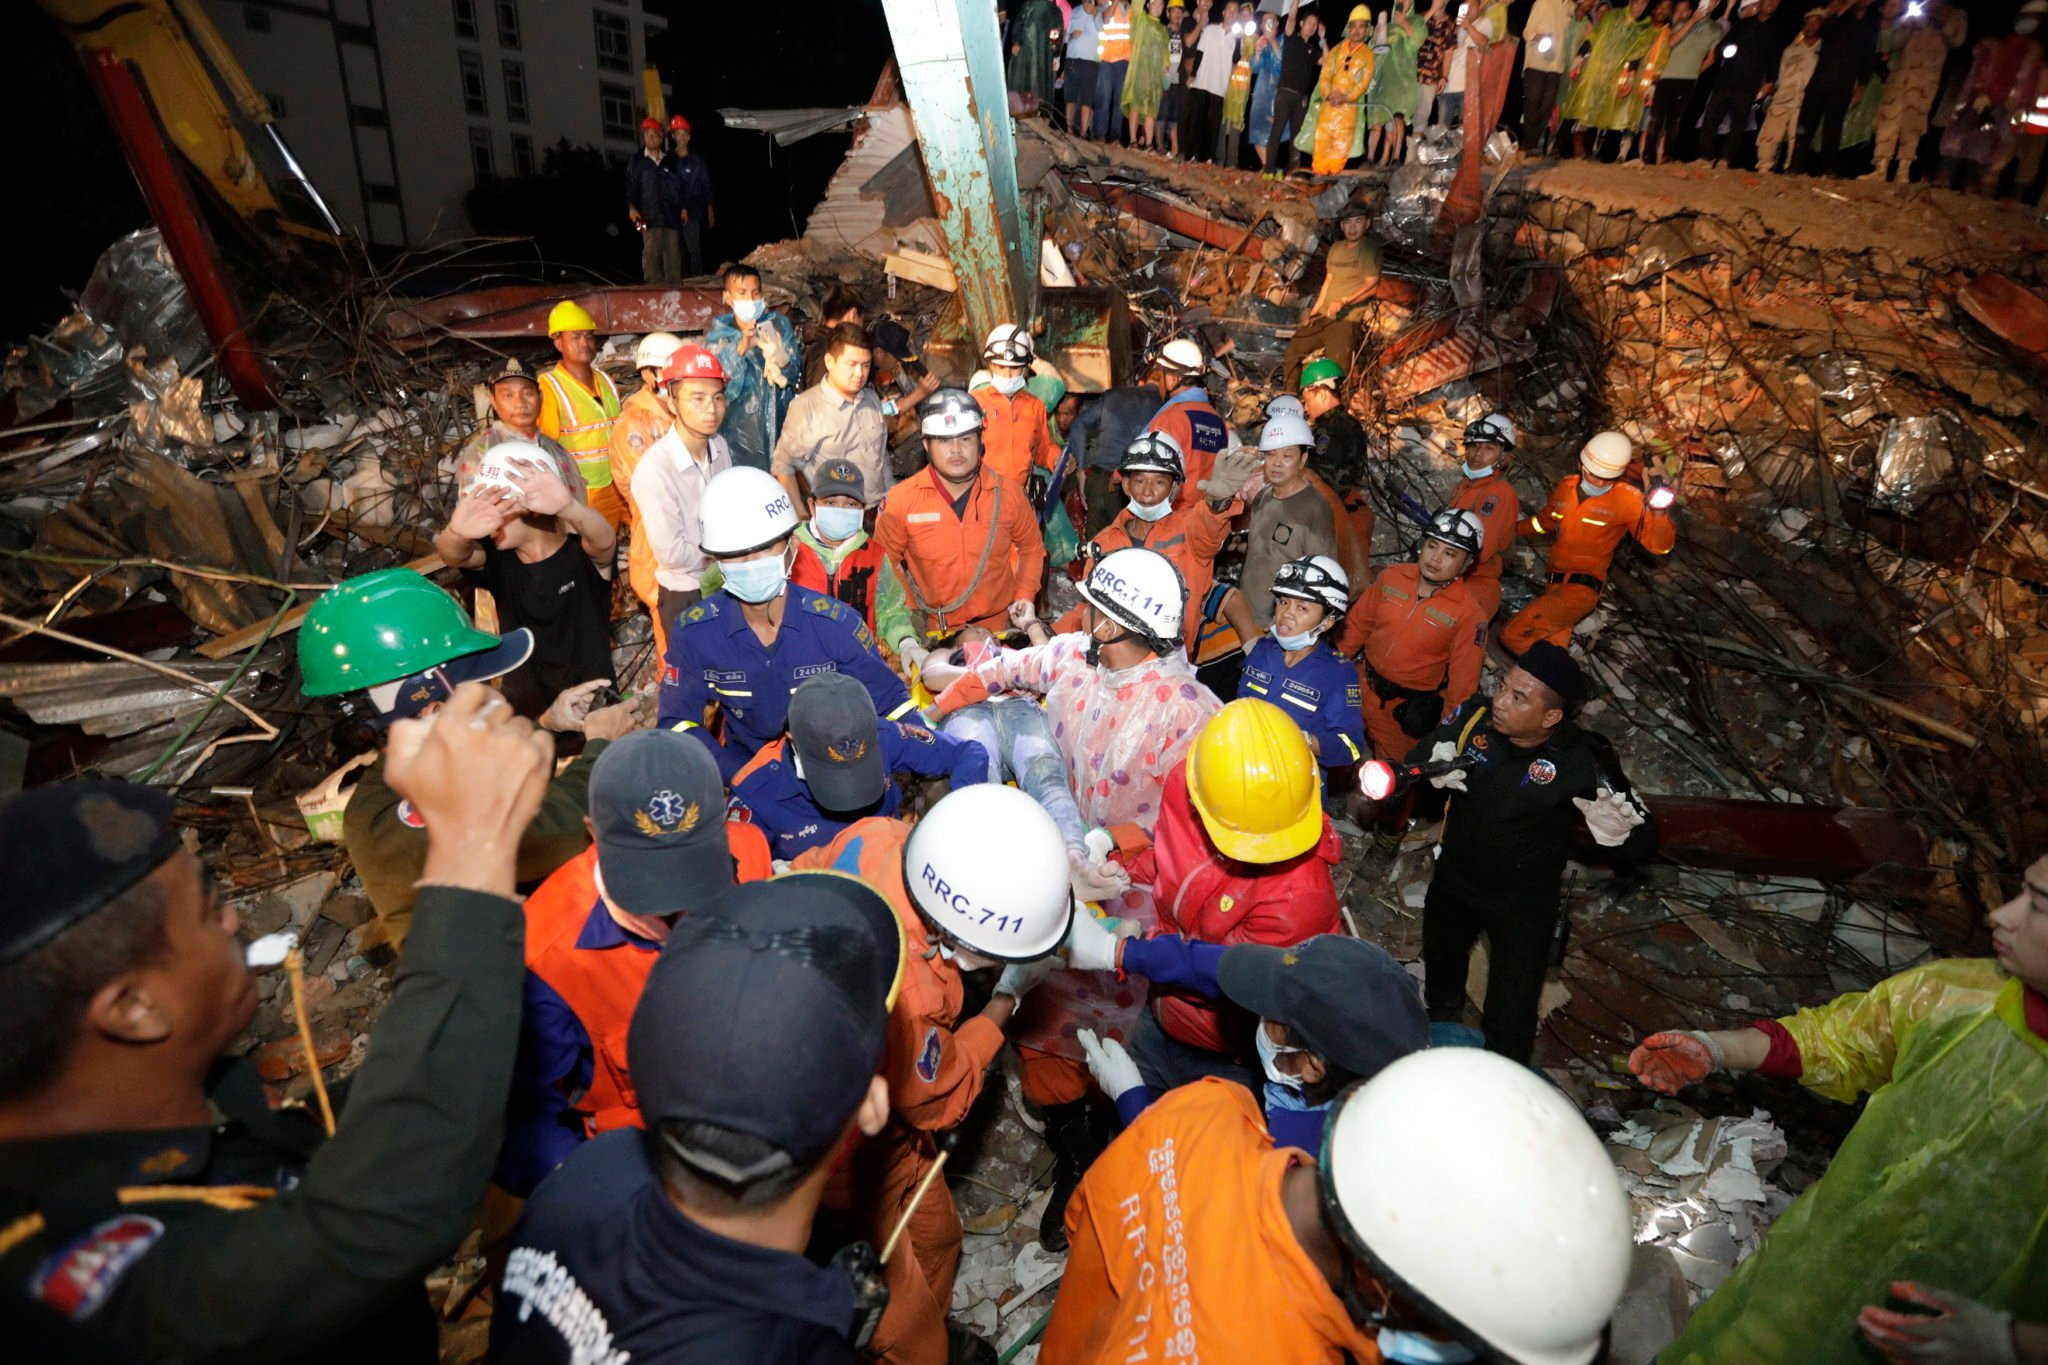 epaselect epa07666866 A Cambodian rescue team carries an injured worker at the site of a collapsed building at a construction site in Preah Sihanouk province, Cambodia, 23 June 2019. A new seven-story building owned by a Chinese company, collapsed in Preah Sihanouk province, killing at least 15 workers and leaving 24 workers injured.  EPA/MAK REMISSA  Dostawca: PAP/EPA.